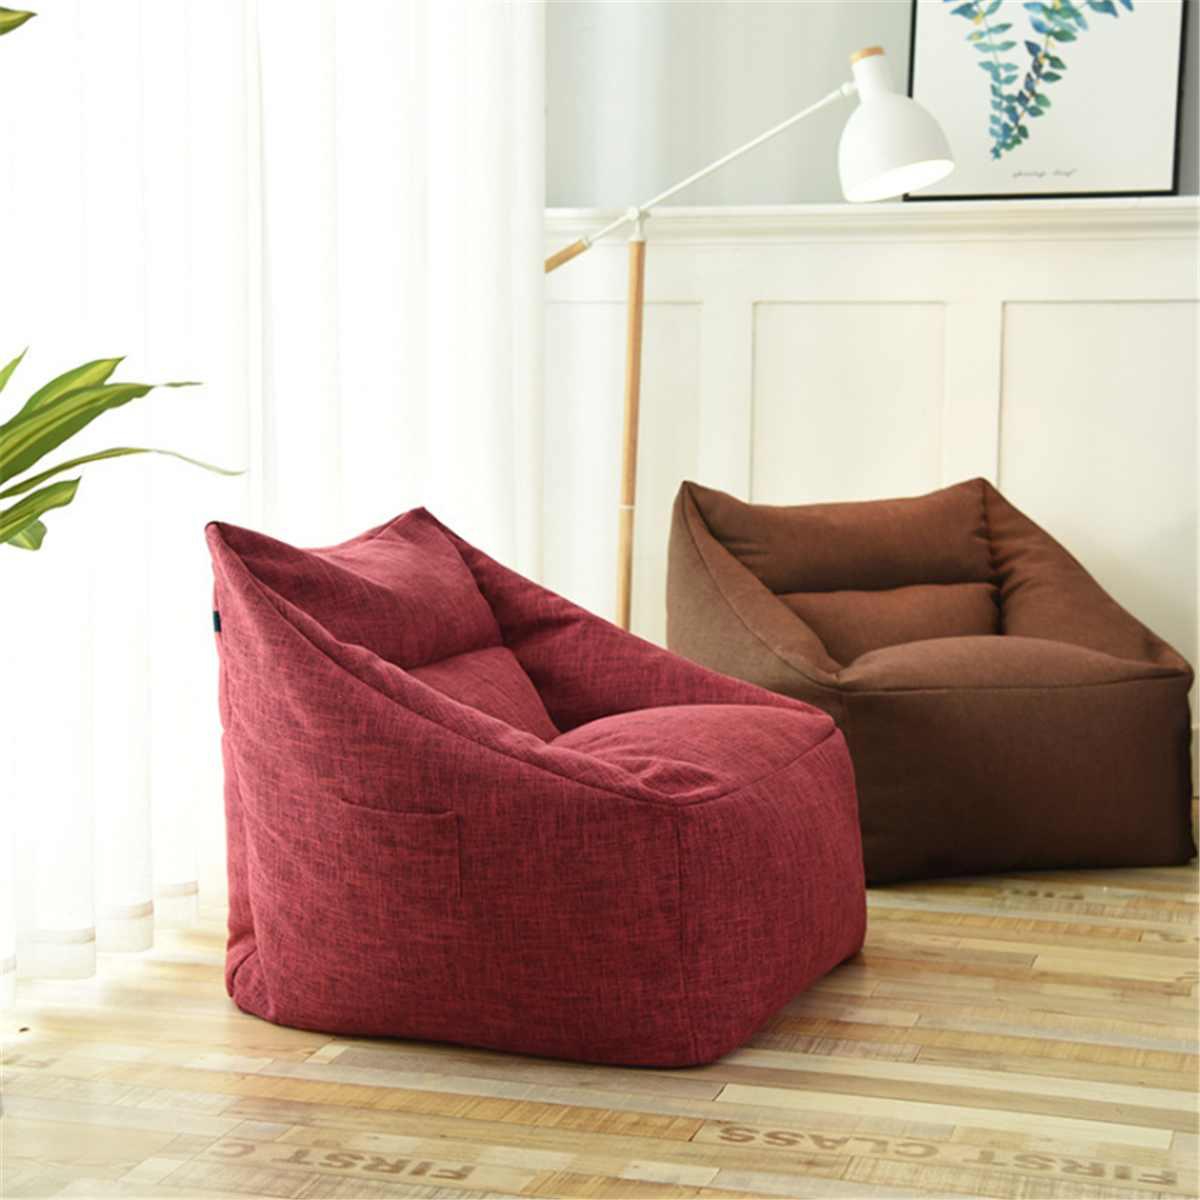 Home Furniture 2 In 1 Bean Bag Sofa Signle Chair Cover Lounger Lazy Sofa Room Furniture With Large Capacity Durable Storage Bag Large Assortment Living Room Furniture